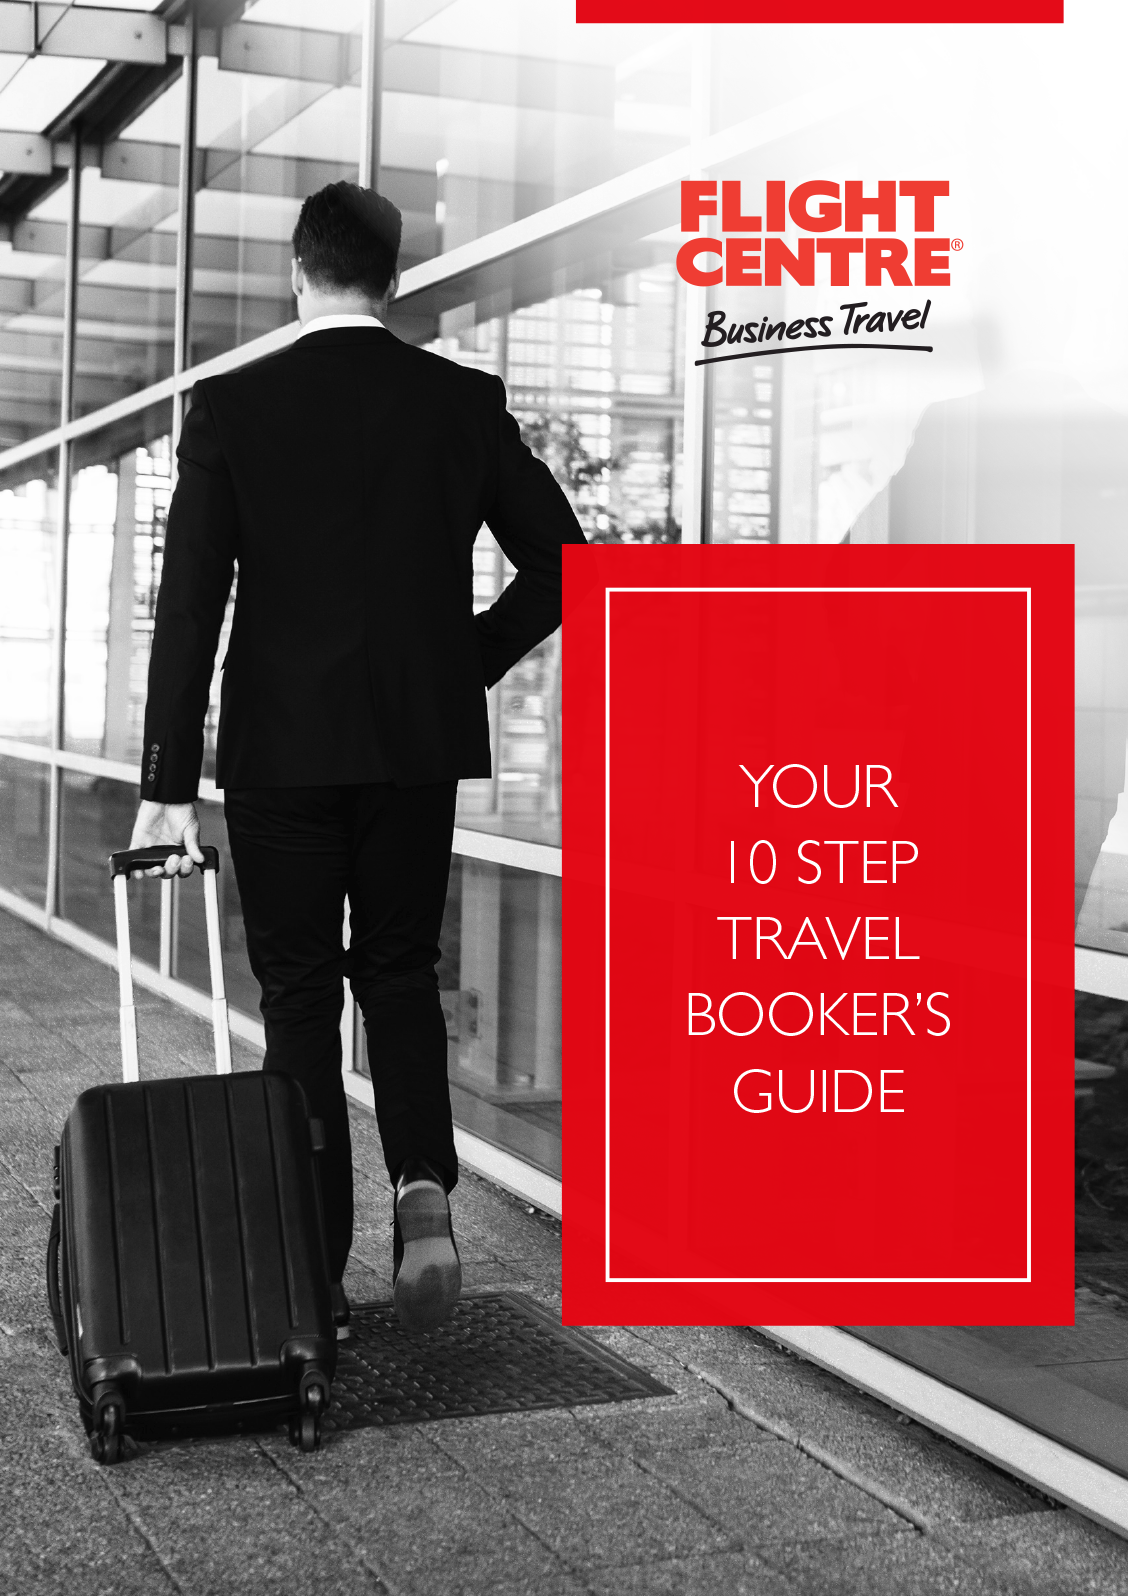 10 Step Travel Bookers Guide